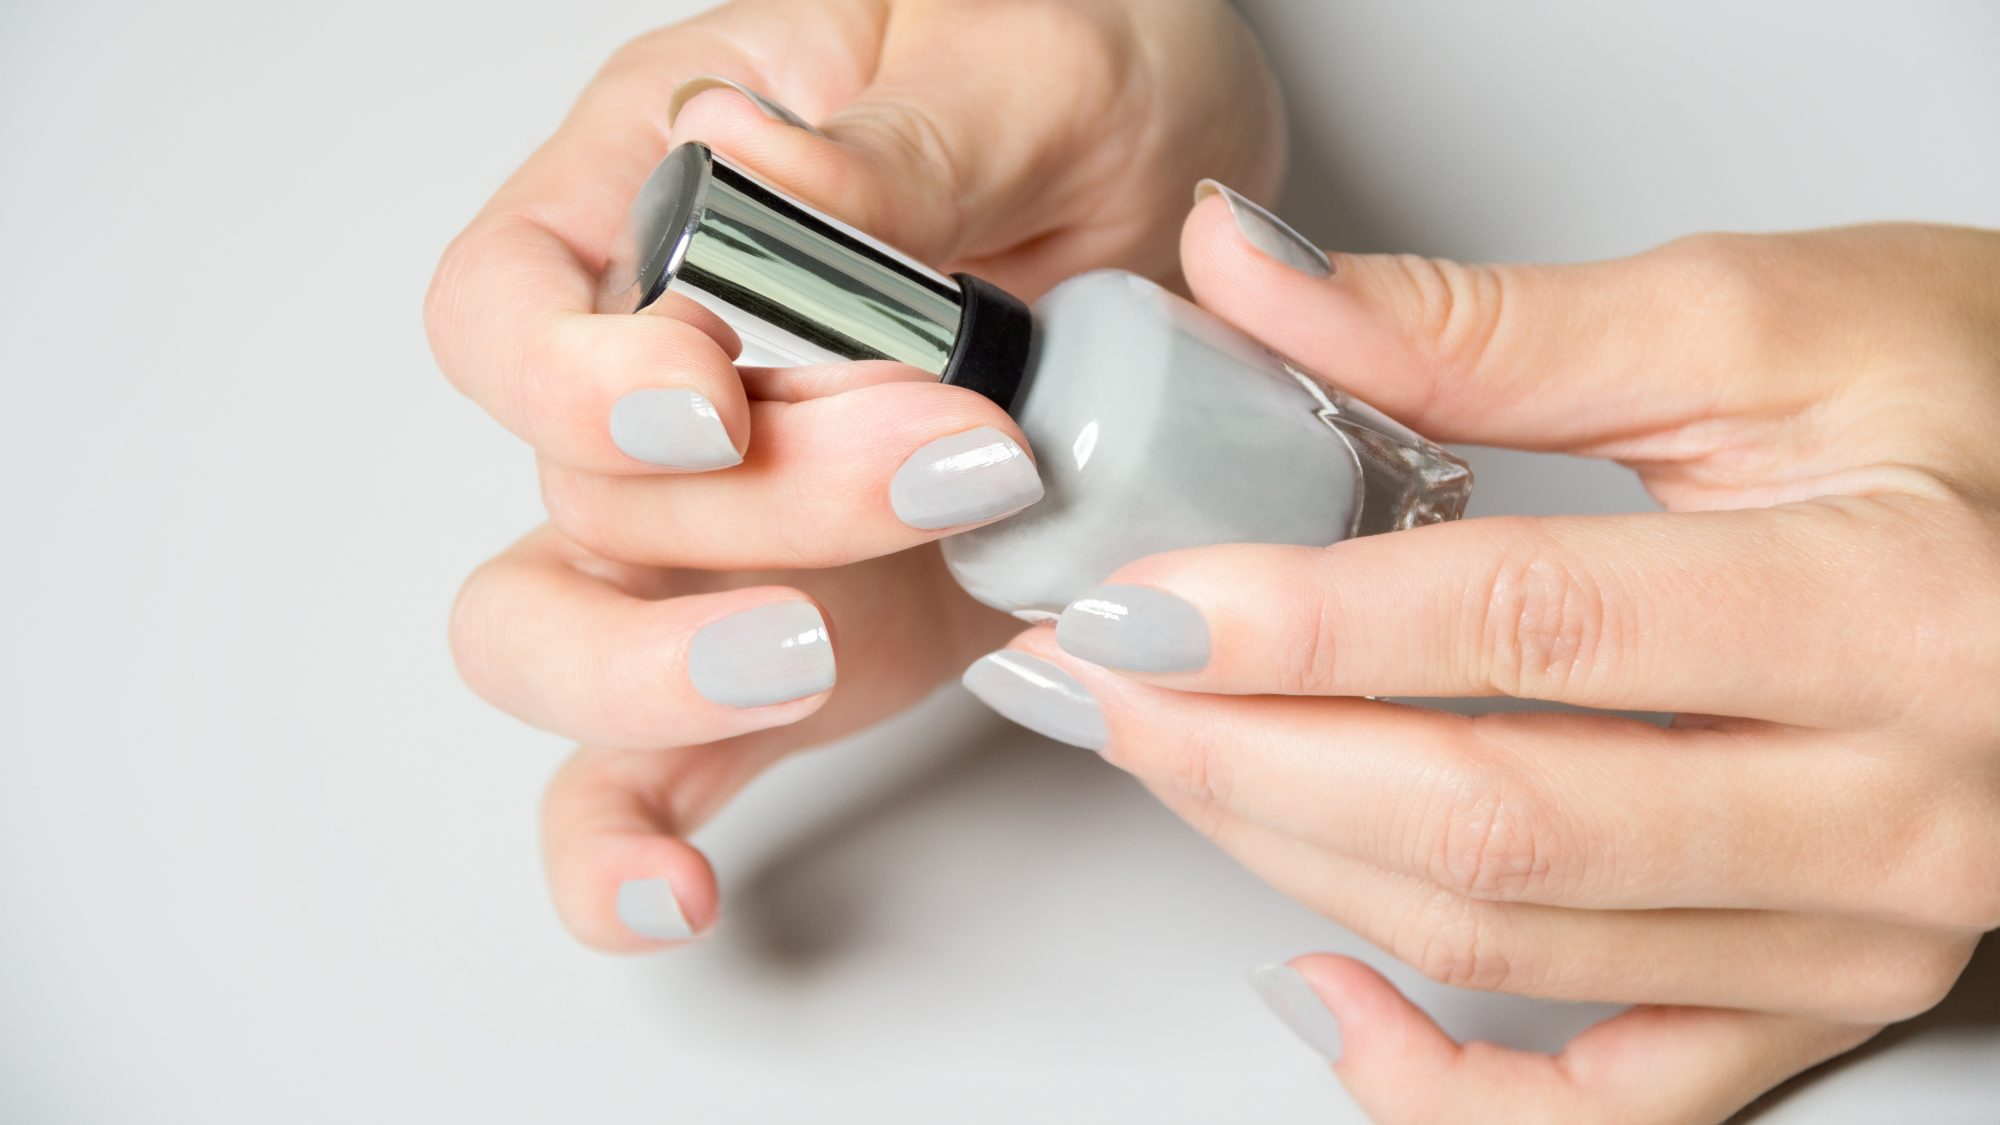 how-to-make-nail-polish-last-longer: woman holding bottle of gray nail polish